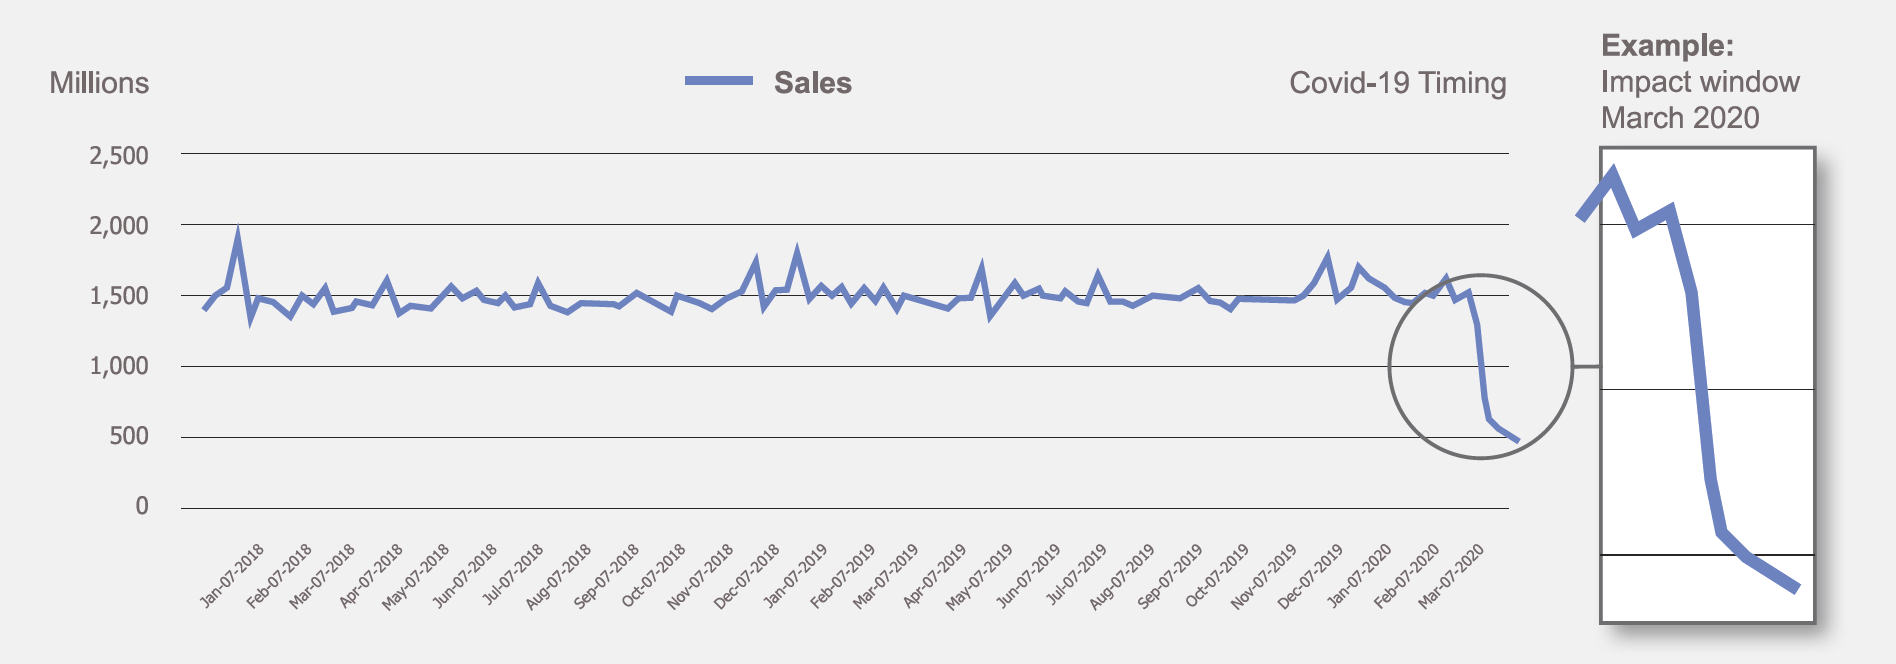 Clear depression in sales during the month of March 2020 which helps define the COVID-19 impact window.